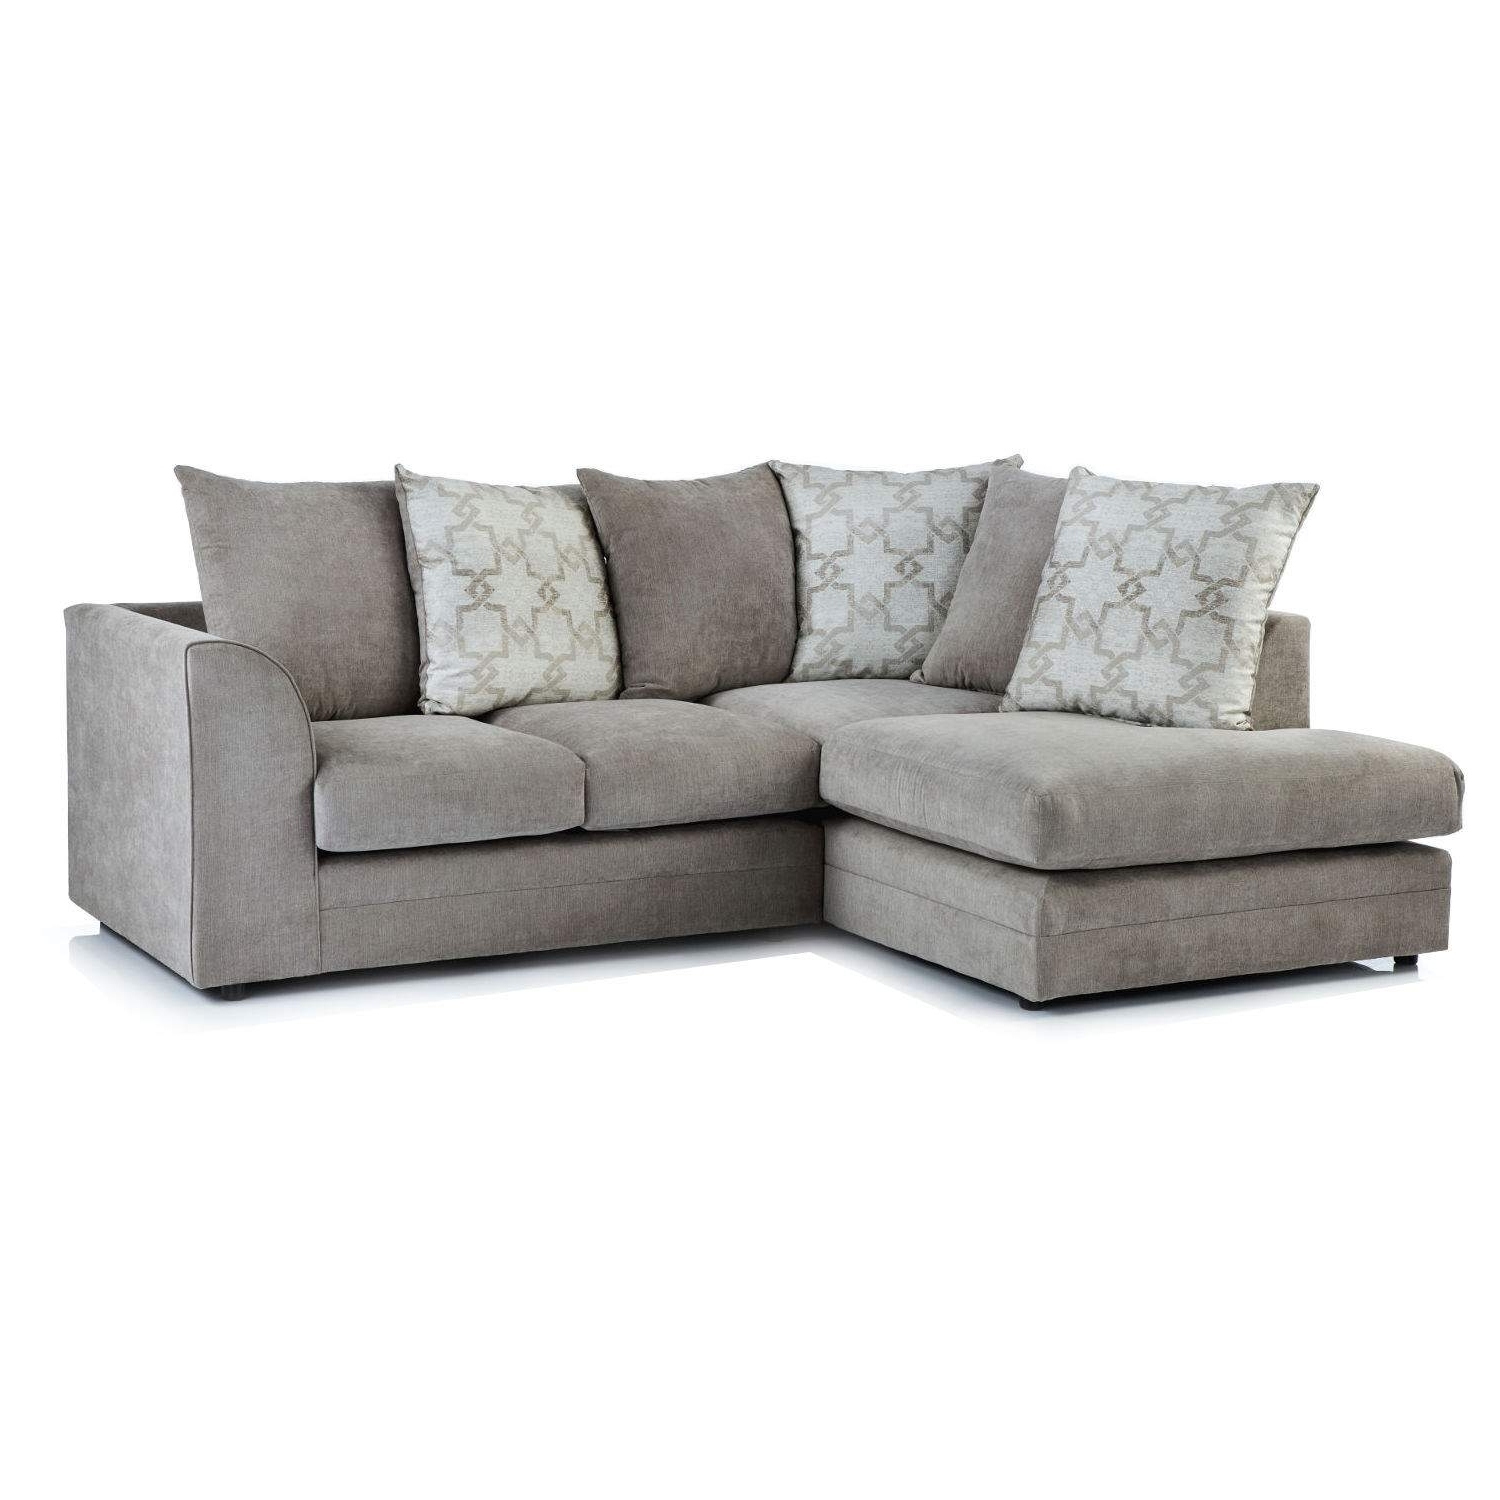 Well Liked Washington Fabric Corner Chaise Sofa – Next Day Delivery Regarding Chaise Sofas (View 4 of 15)